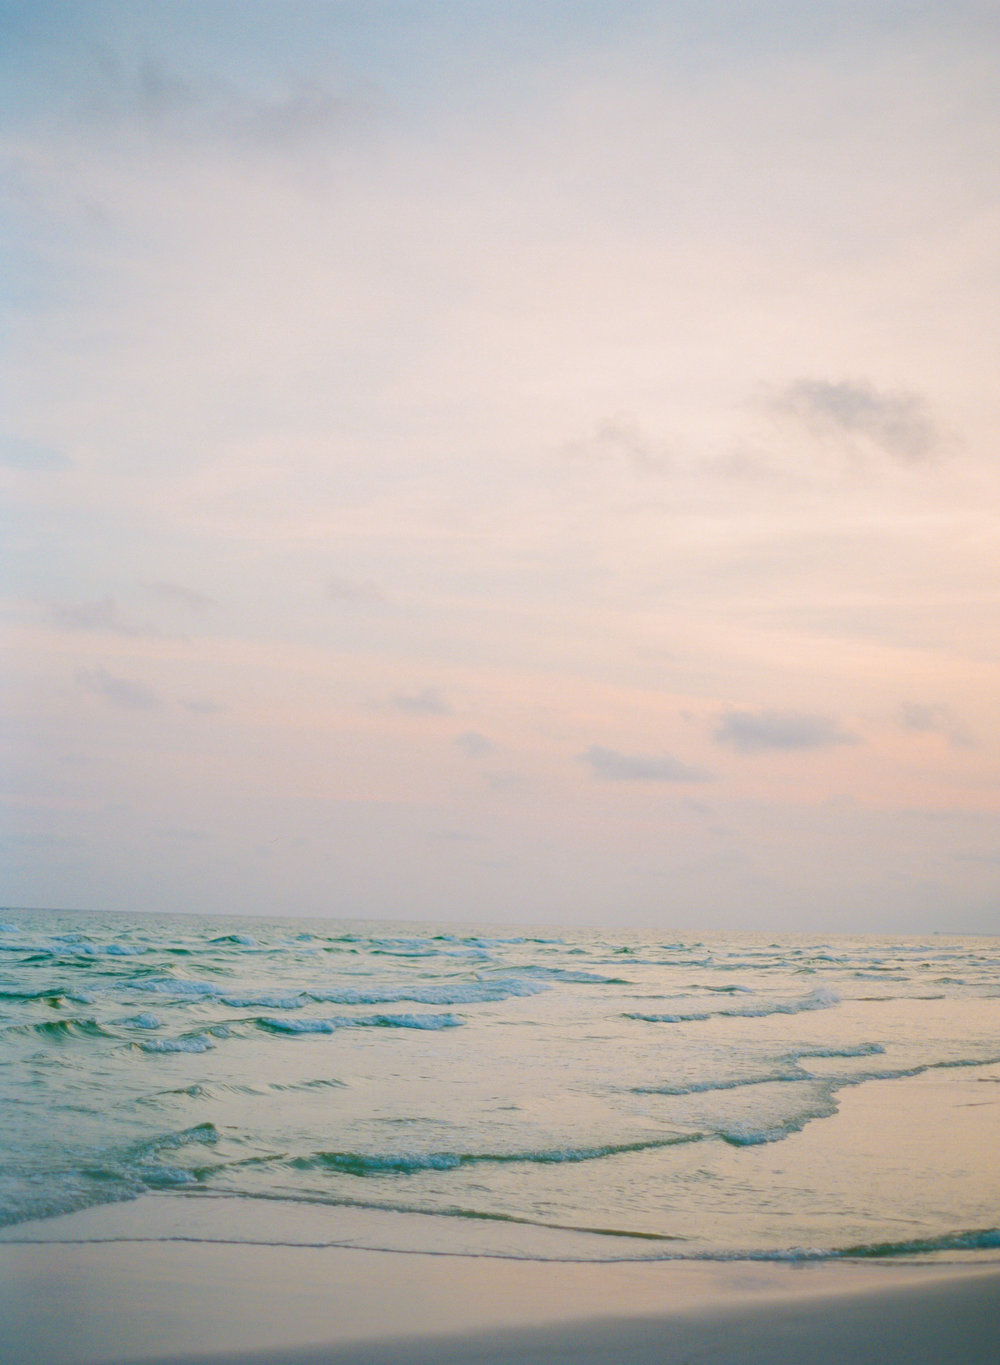 santa-rosa-beach-wedding-photographer-kayliebpoplin